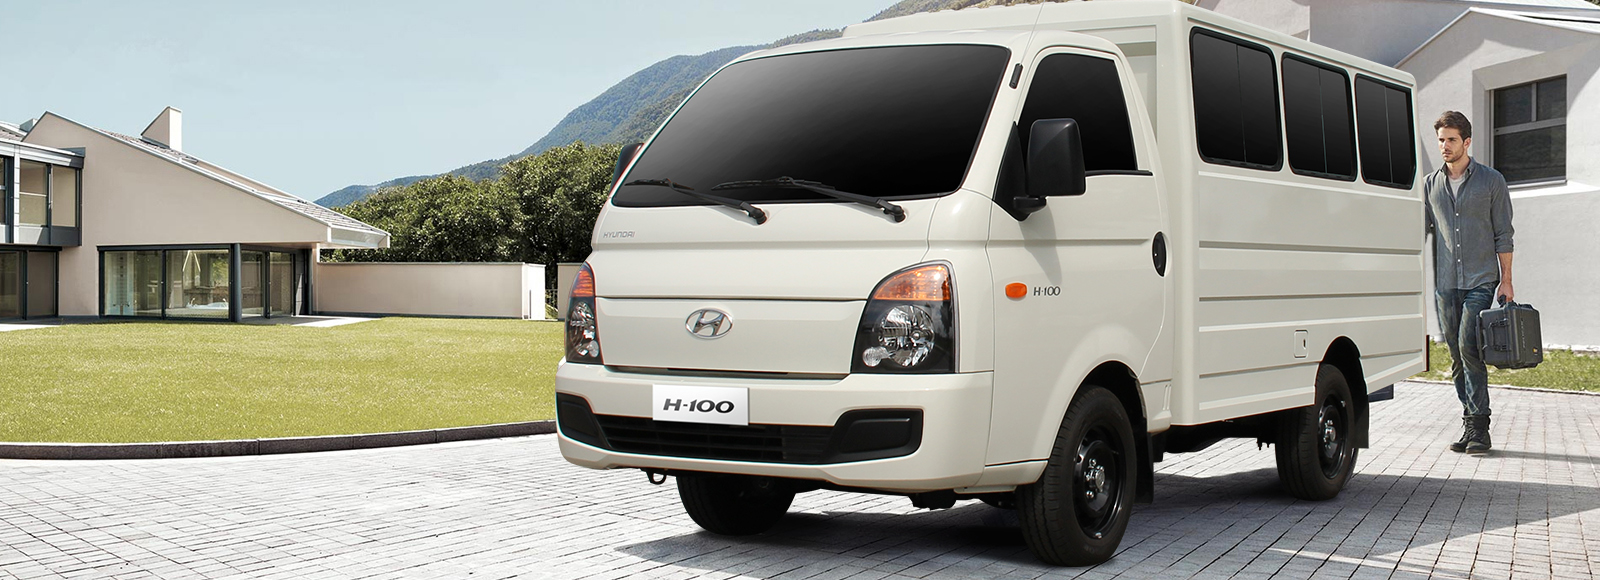 H 100 Light Commercial Vehicle Hyundai Philippines